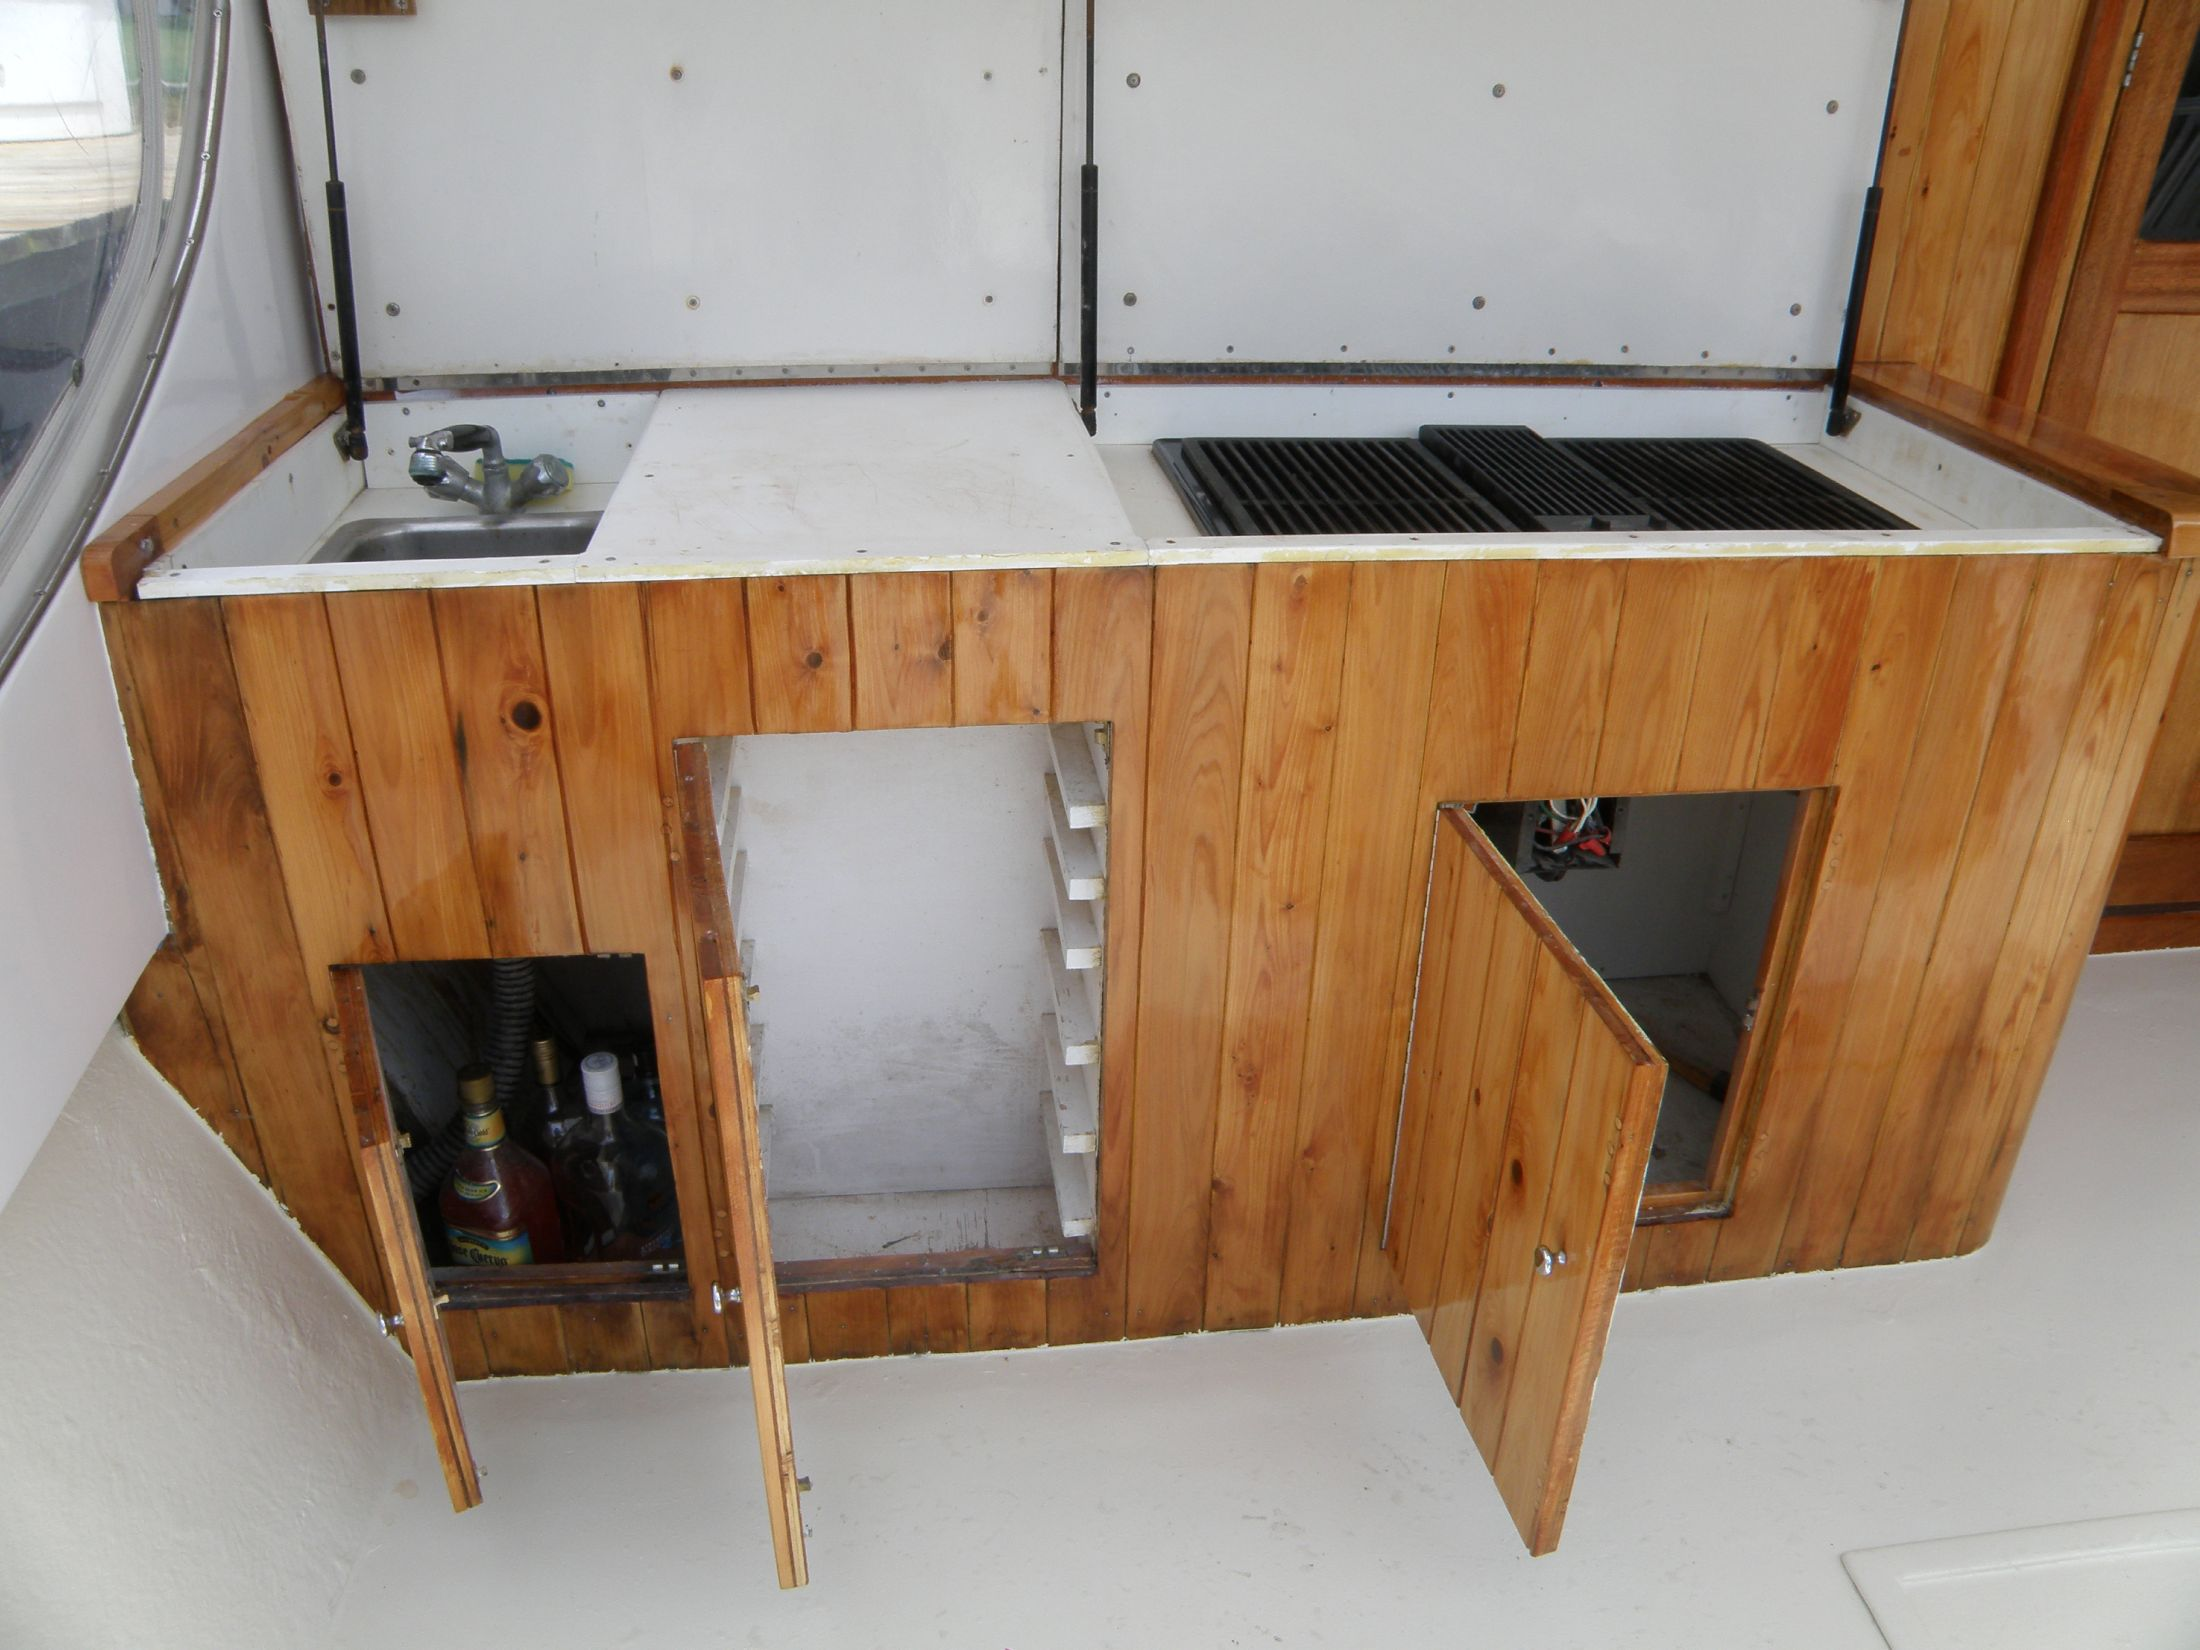 grill, hot/cold sink, storage